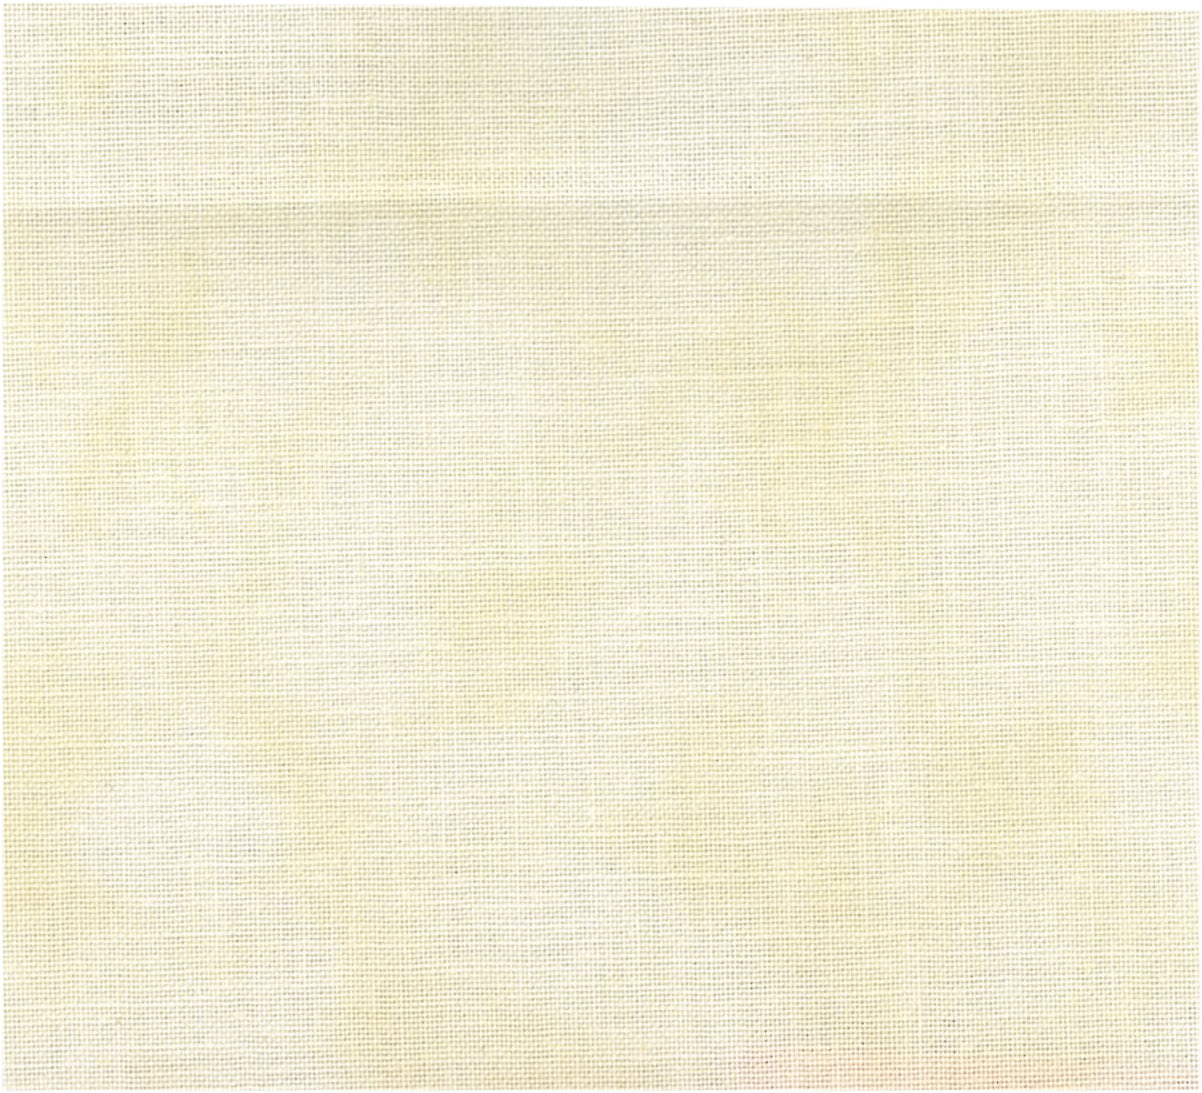 LEA MARBLE FABRIC CREAM